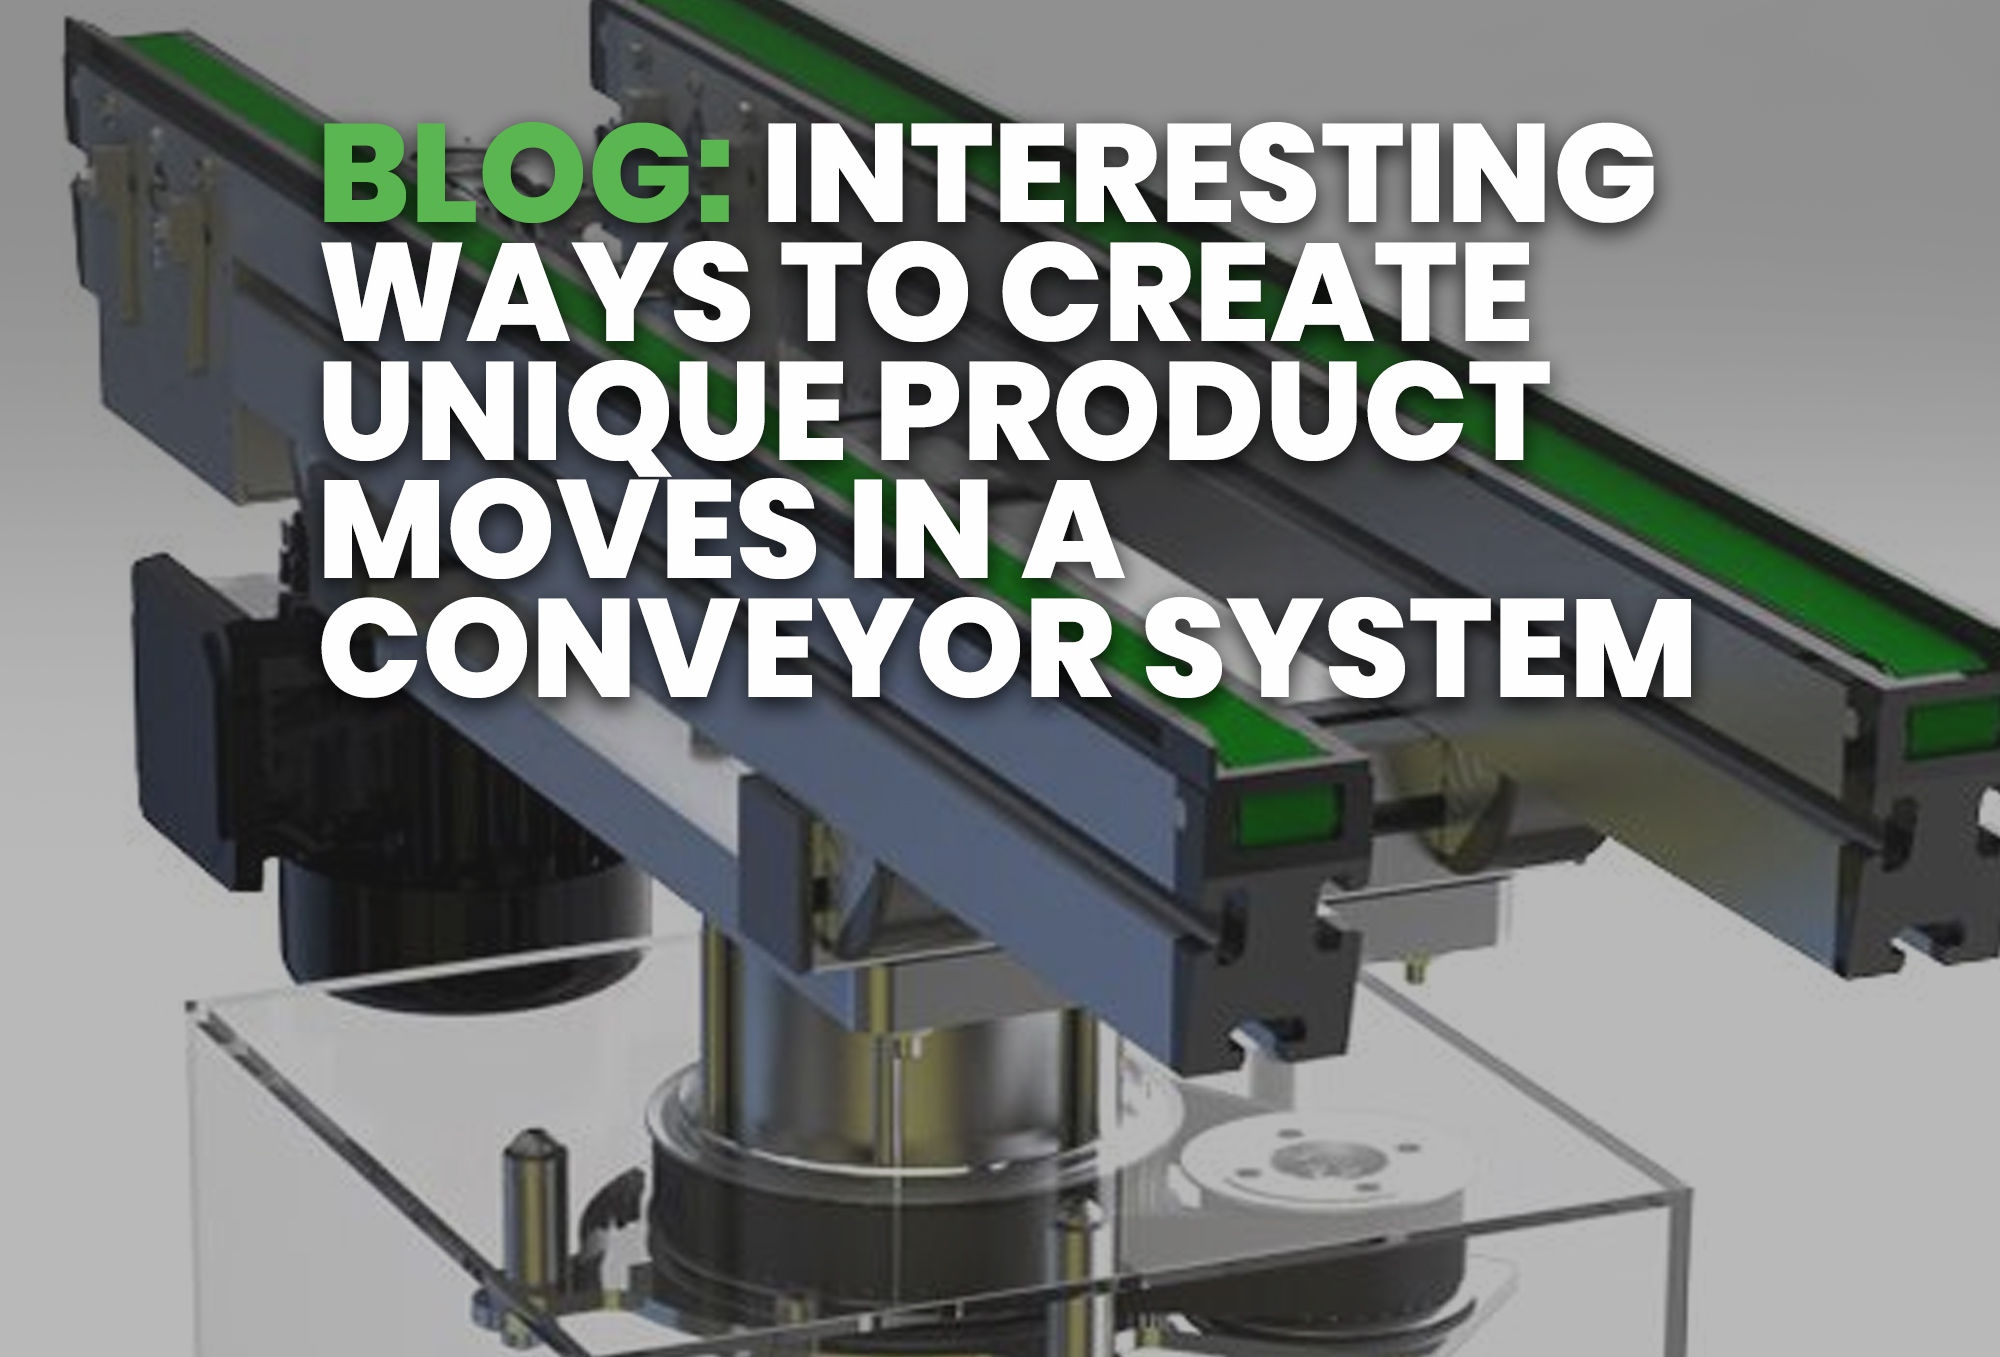 BLOG- Interesting Ways To Create Unique Product Moves In A Conveyor System